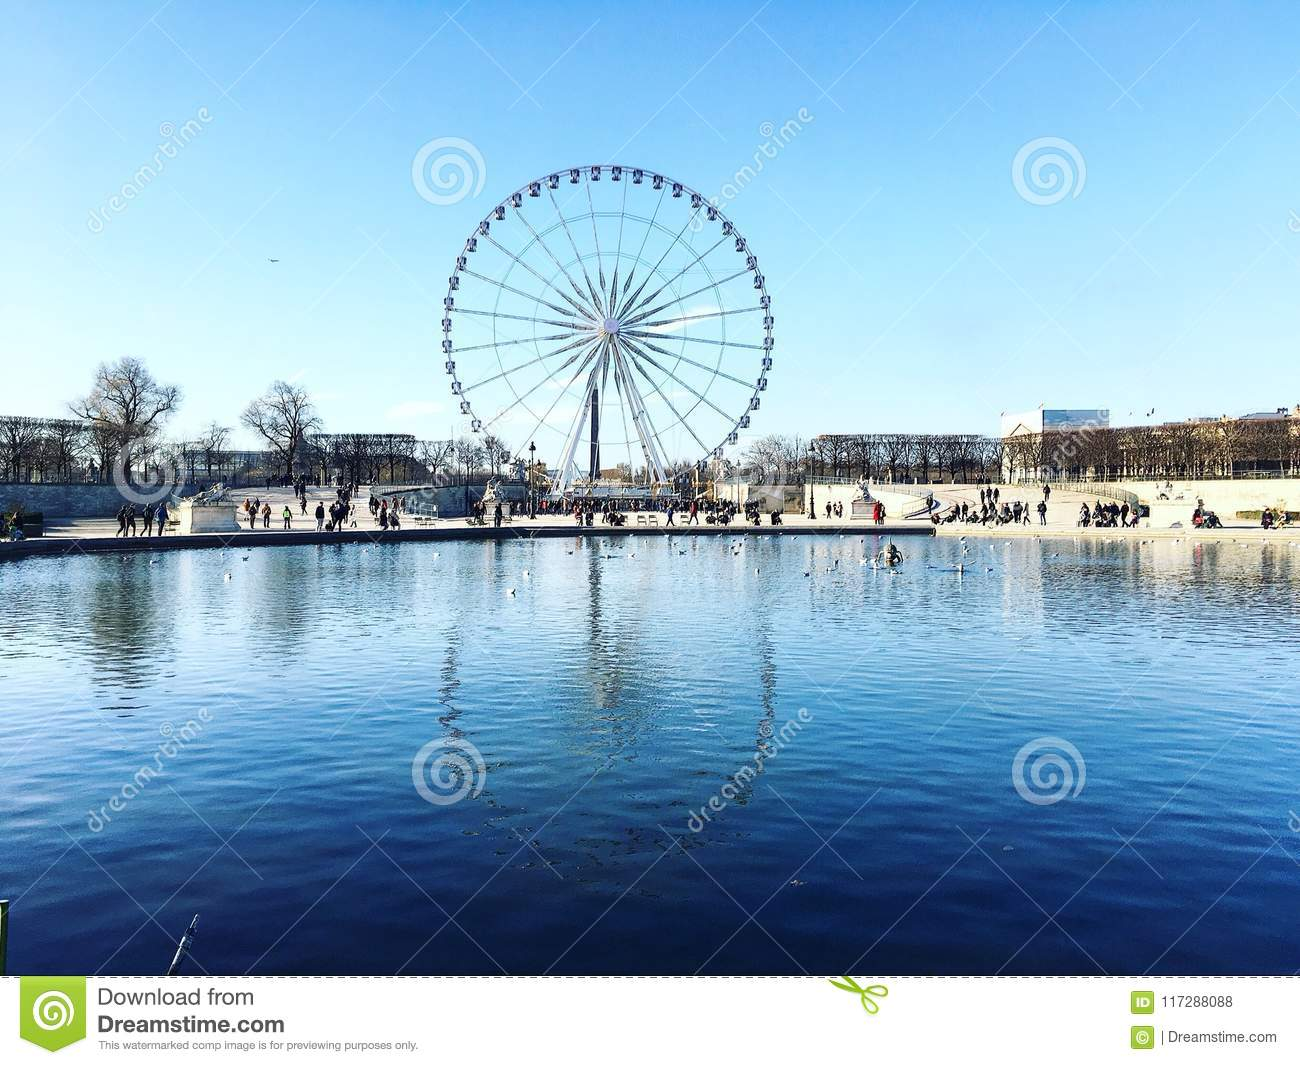 The Roue de Paris